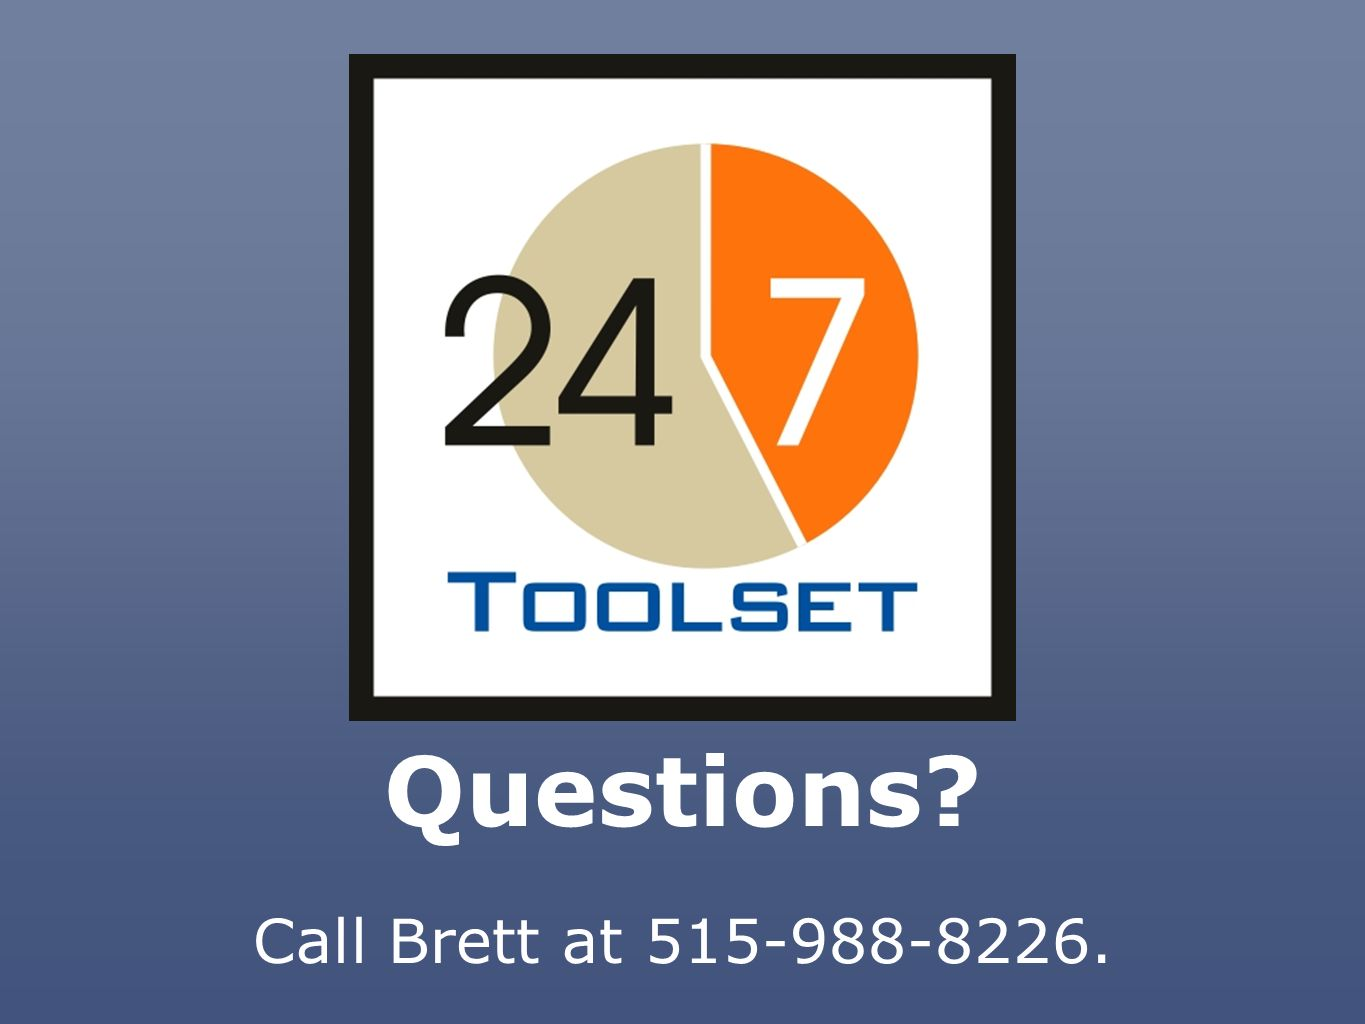 Questions Call Brett at 515-988-8226.